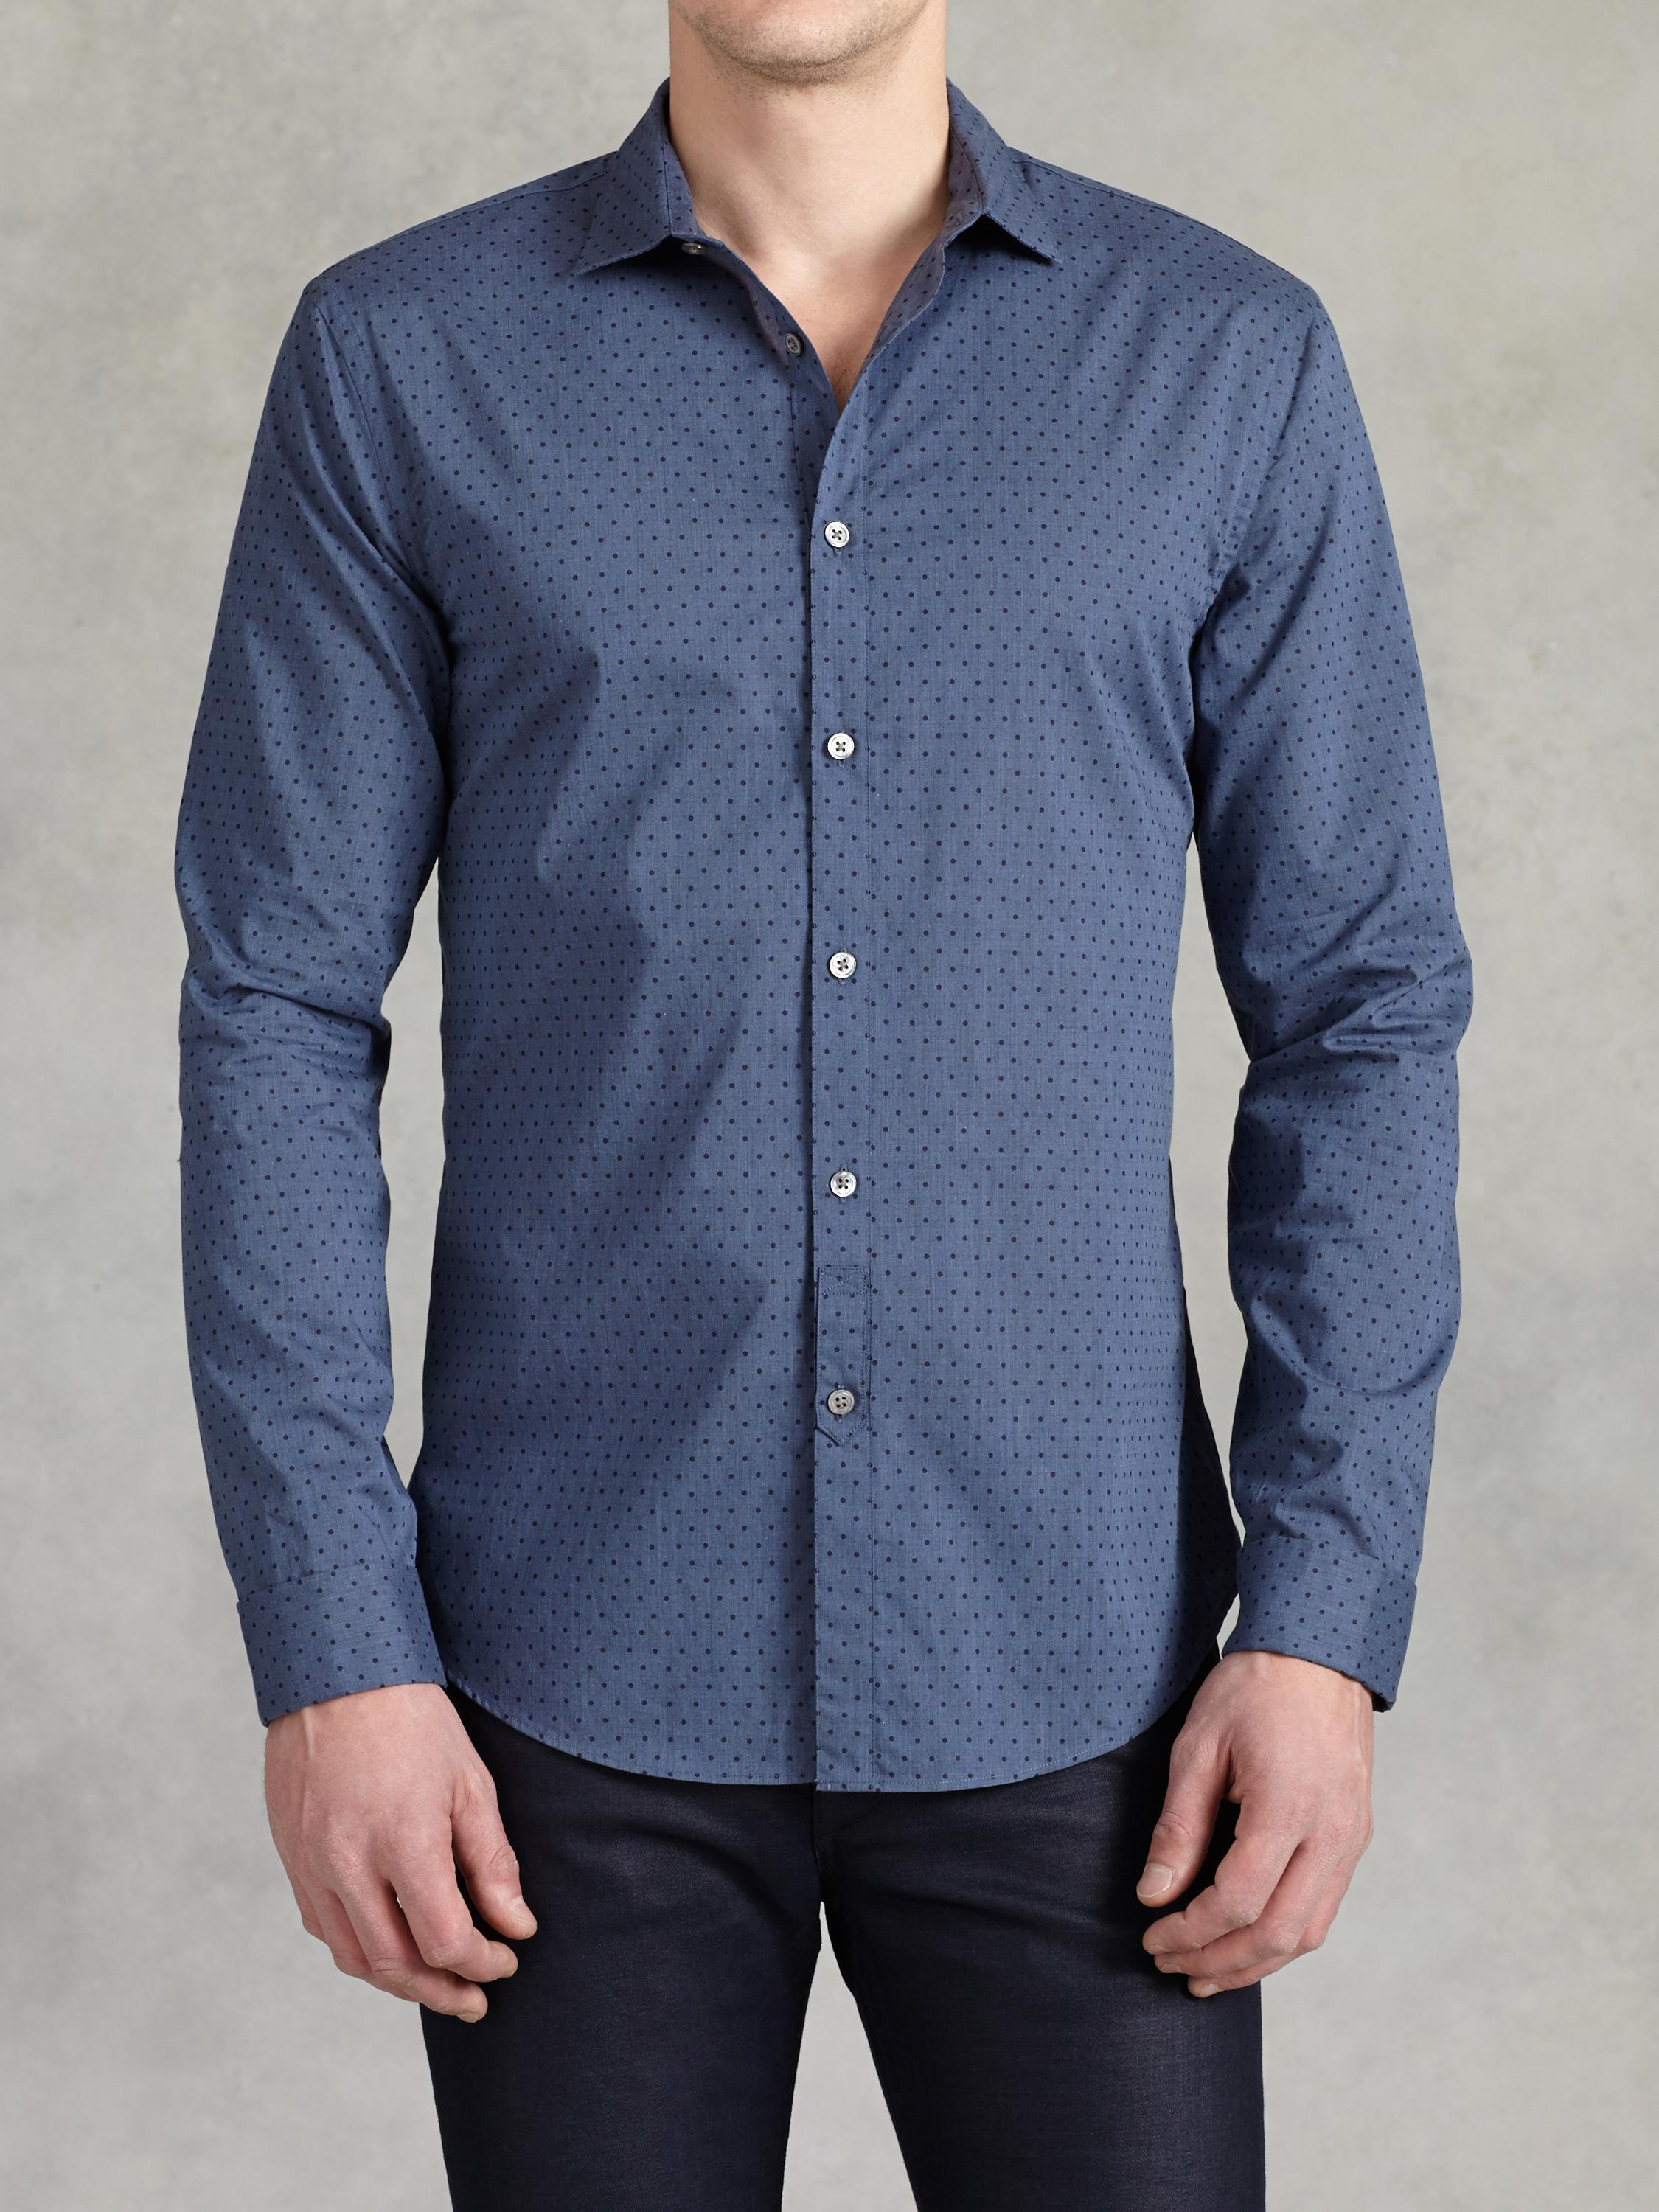 Cotton Dot Shirt